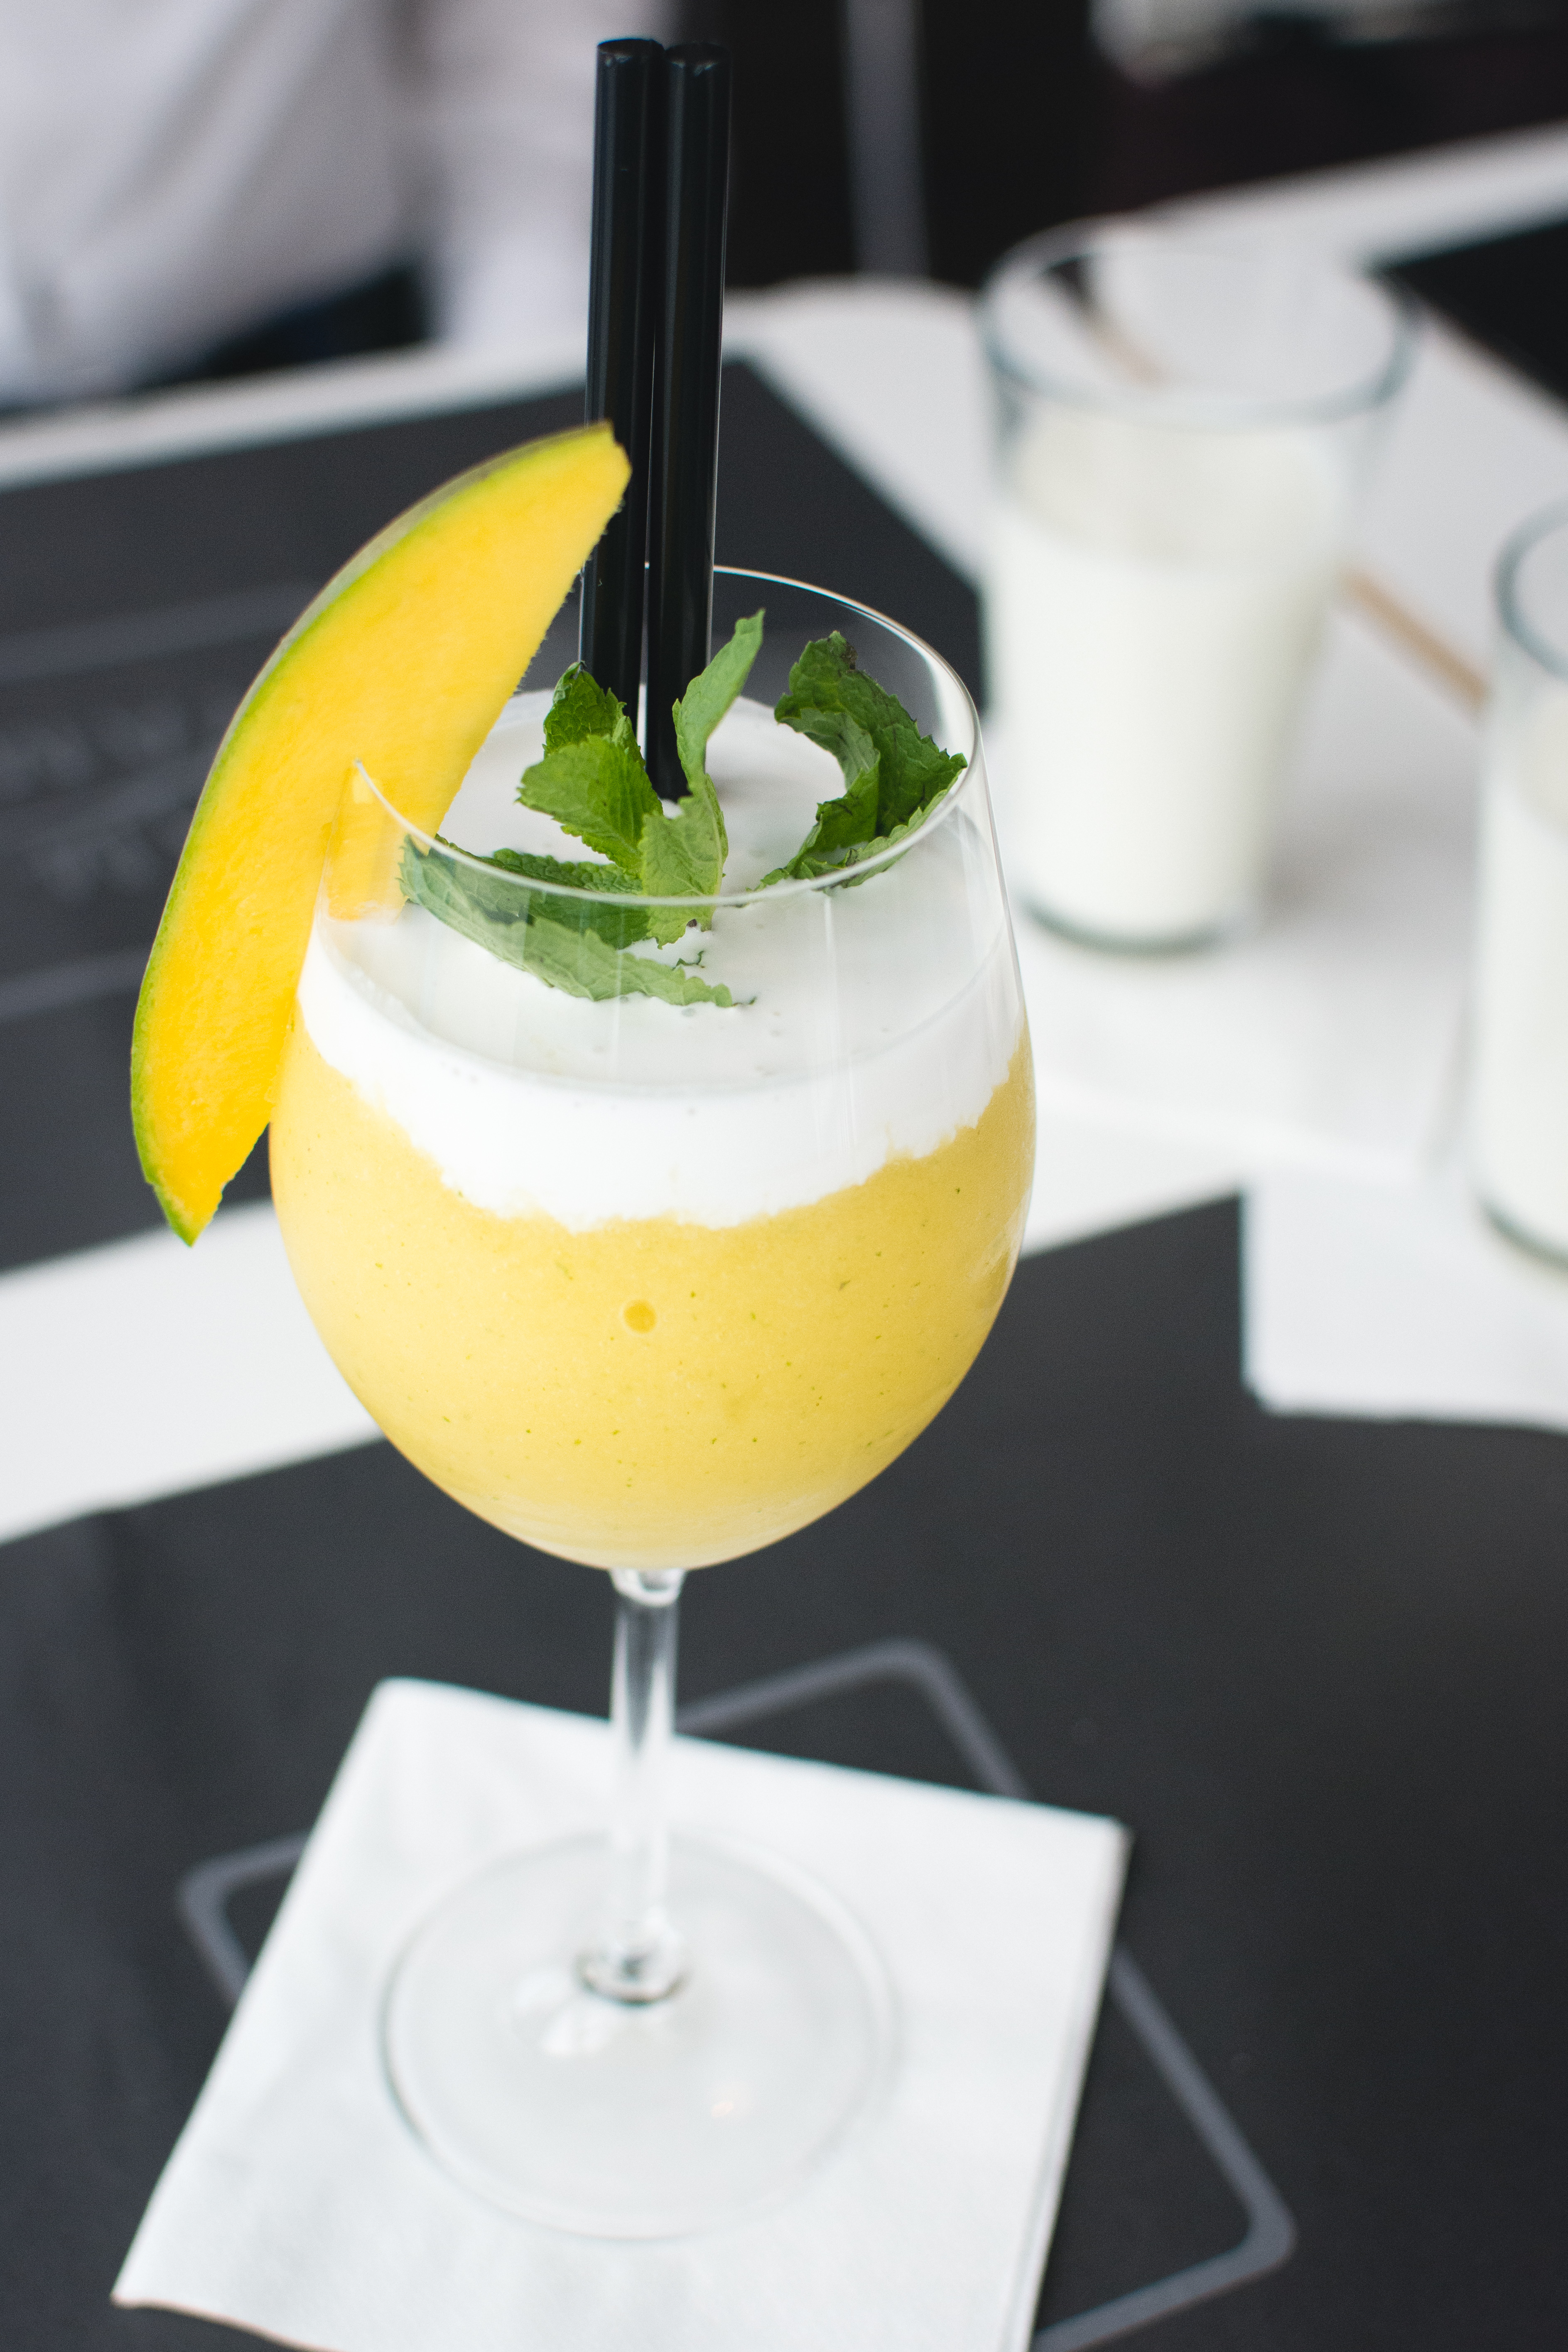 Frozen mango drink in a restaurant